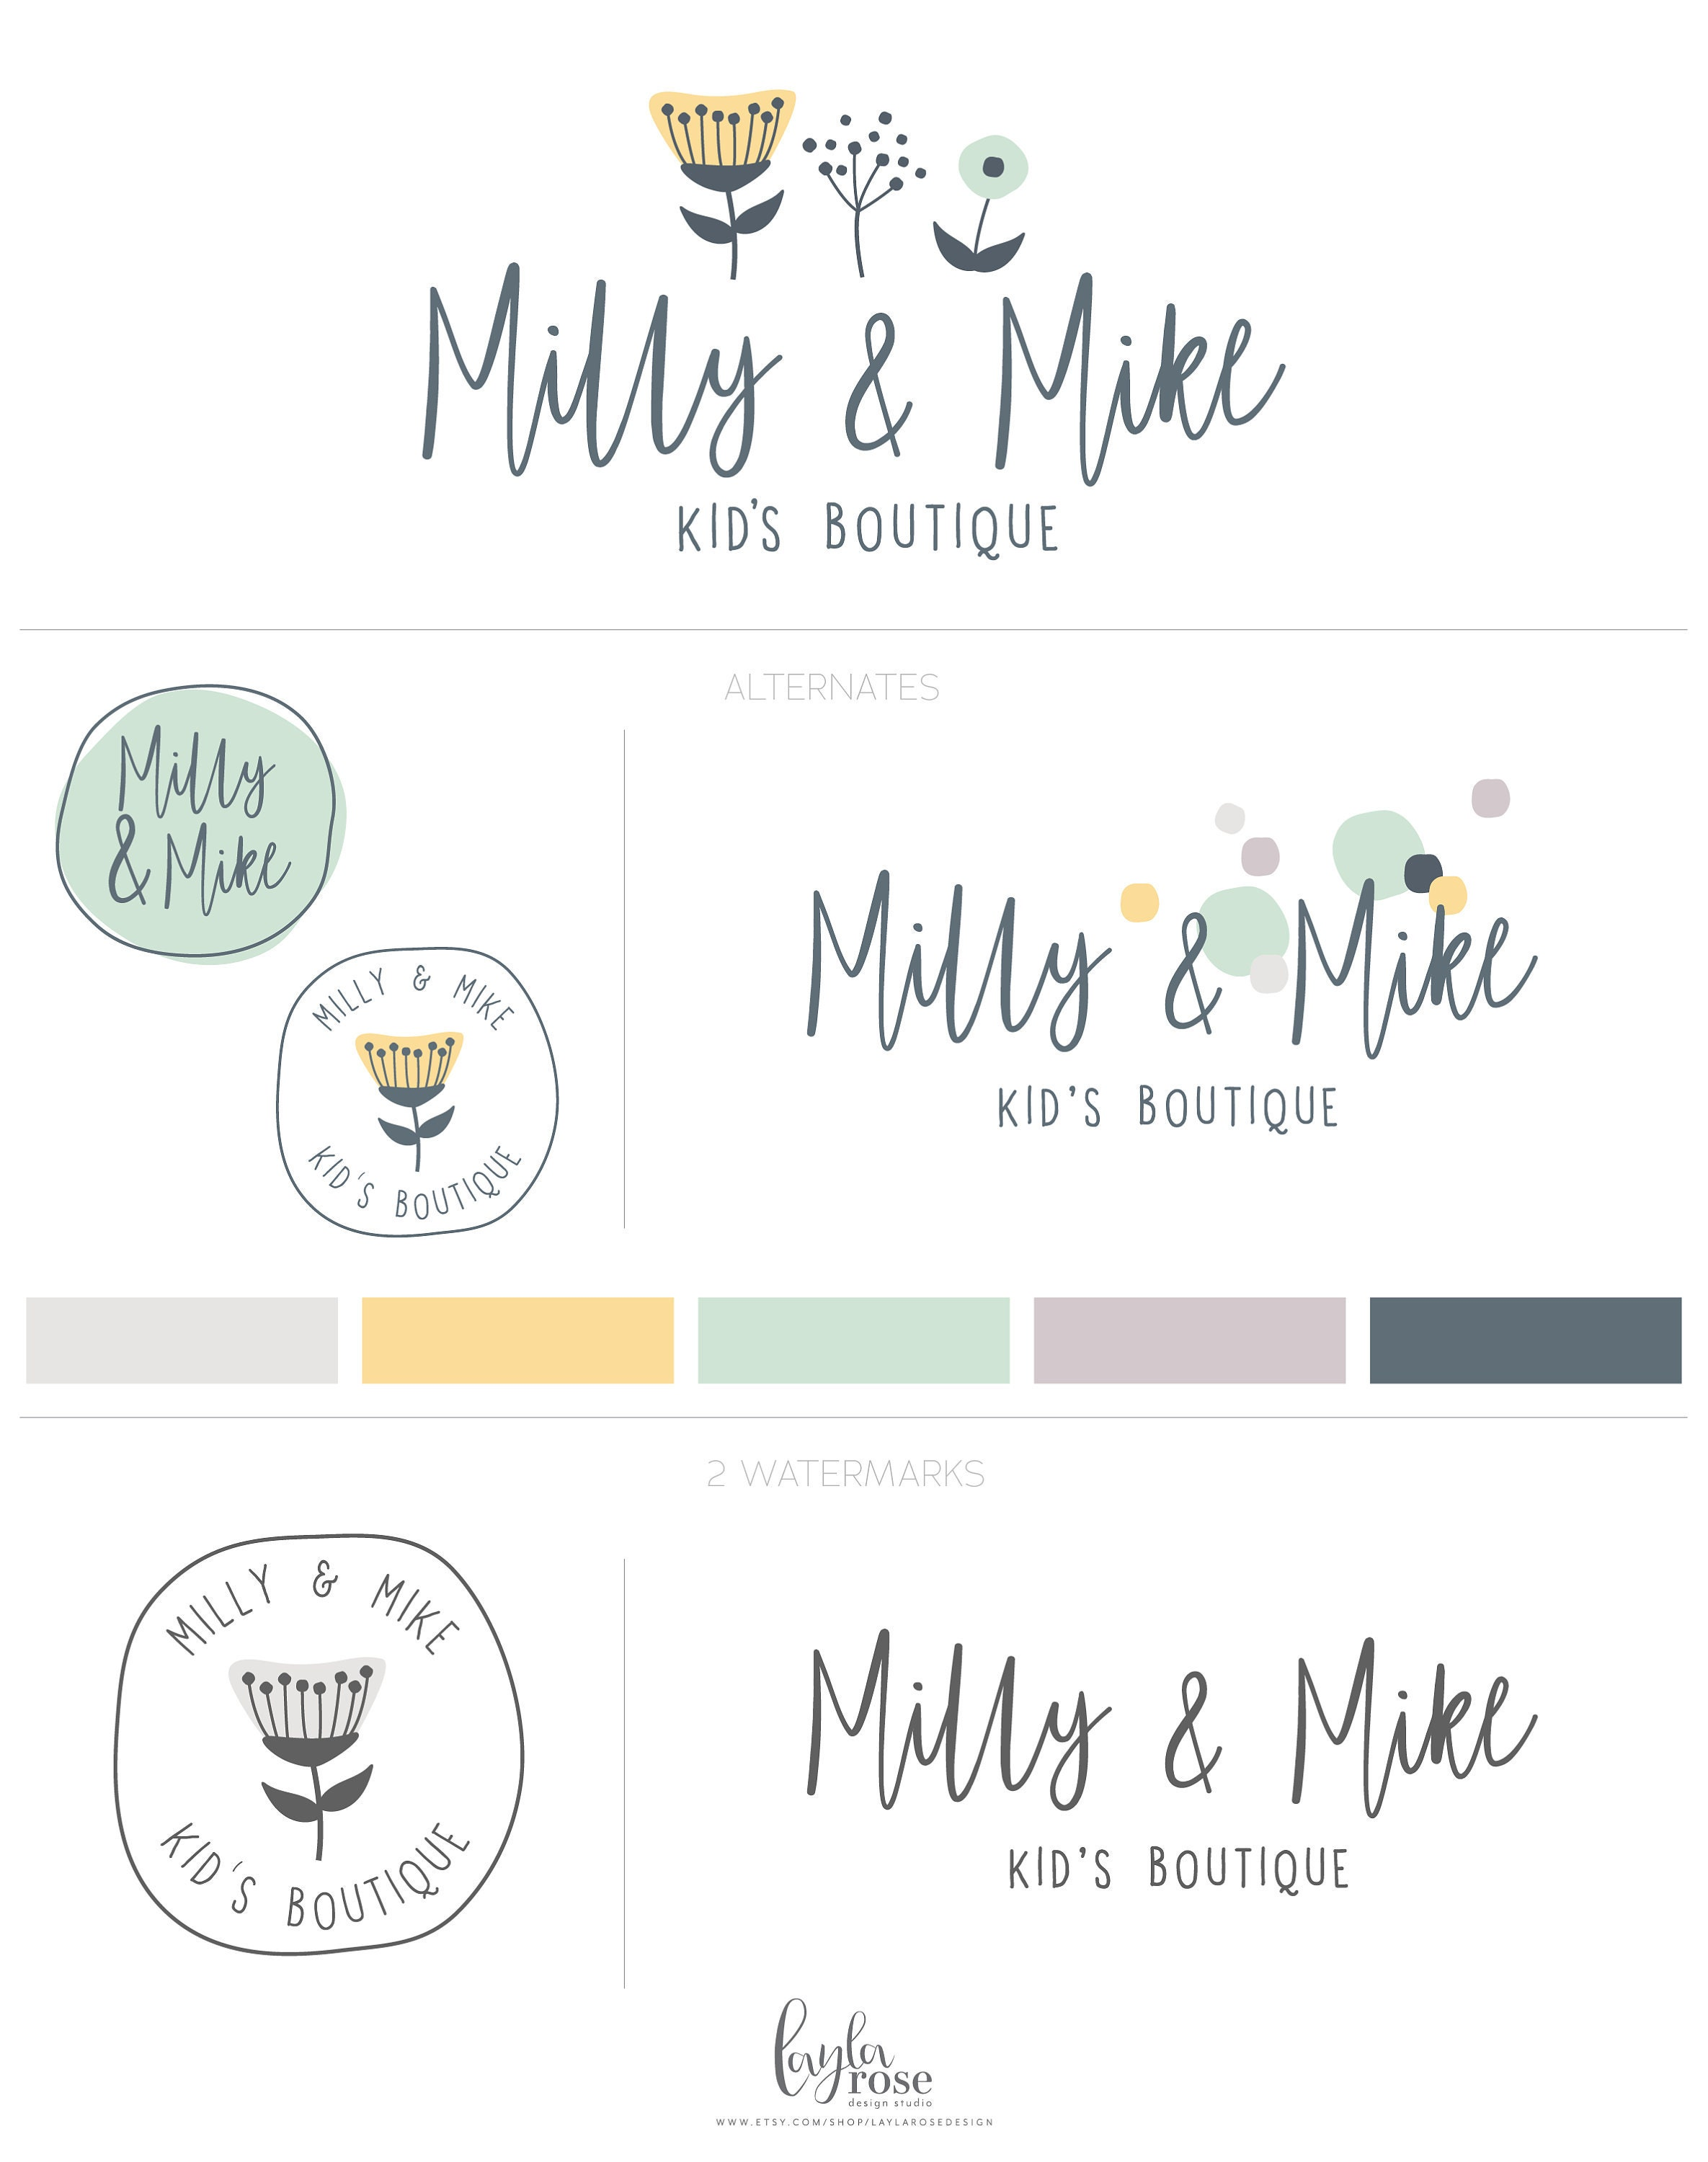 Cute Logo Baby Boutique Logo Childrens Branding Fun Logo Etsy